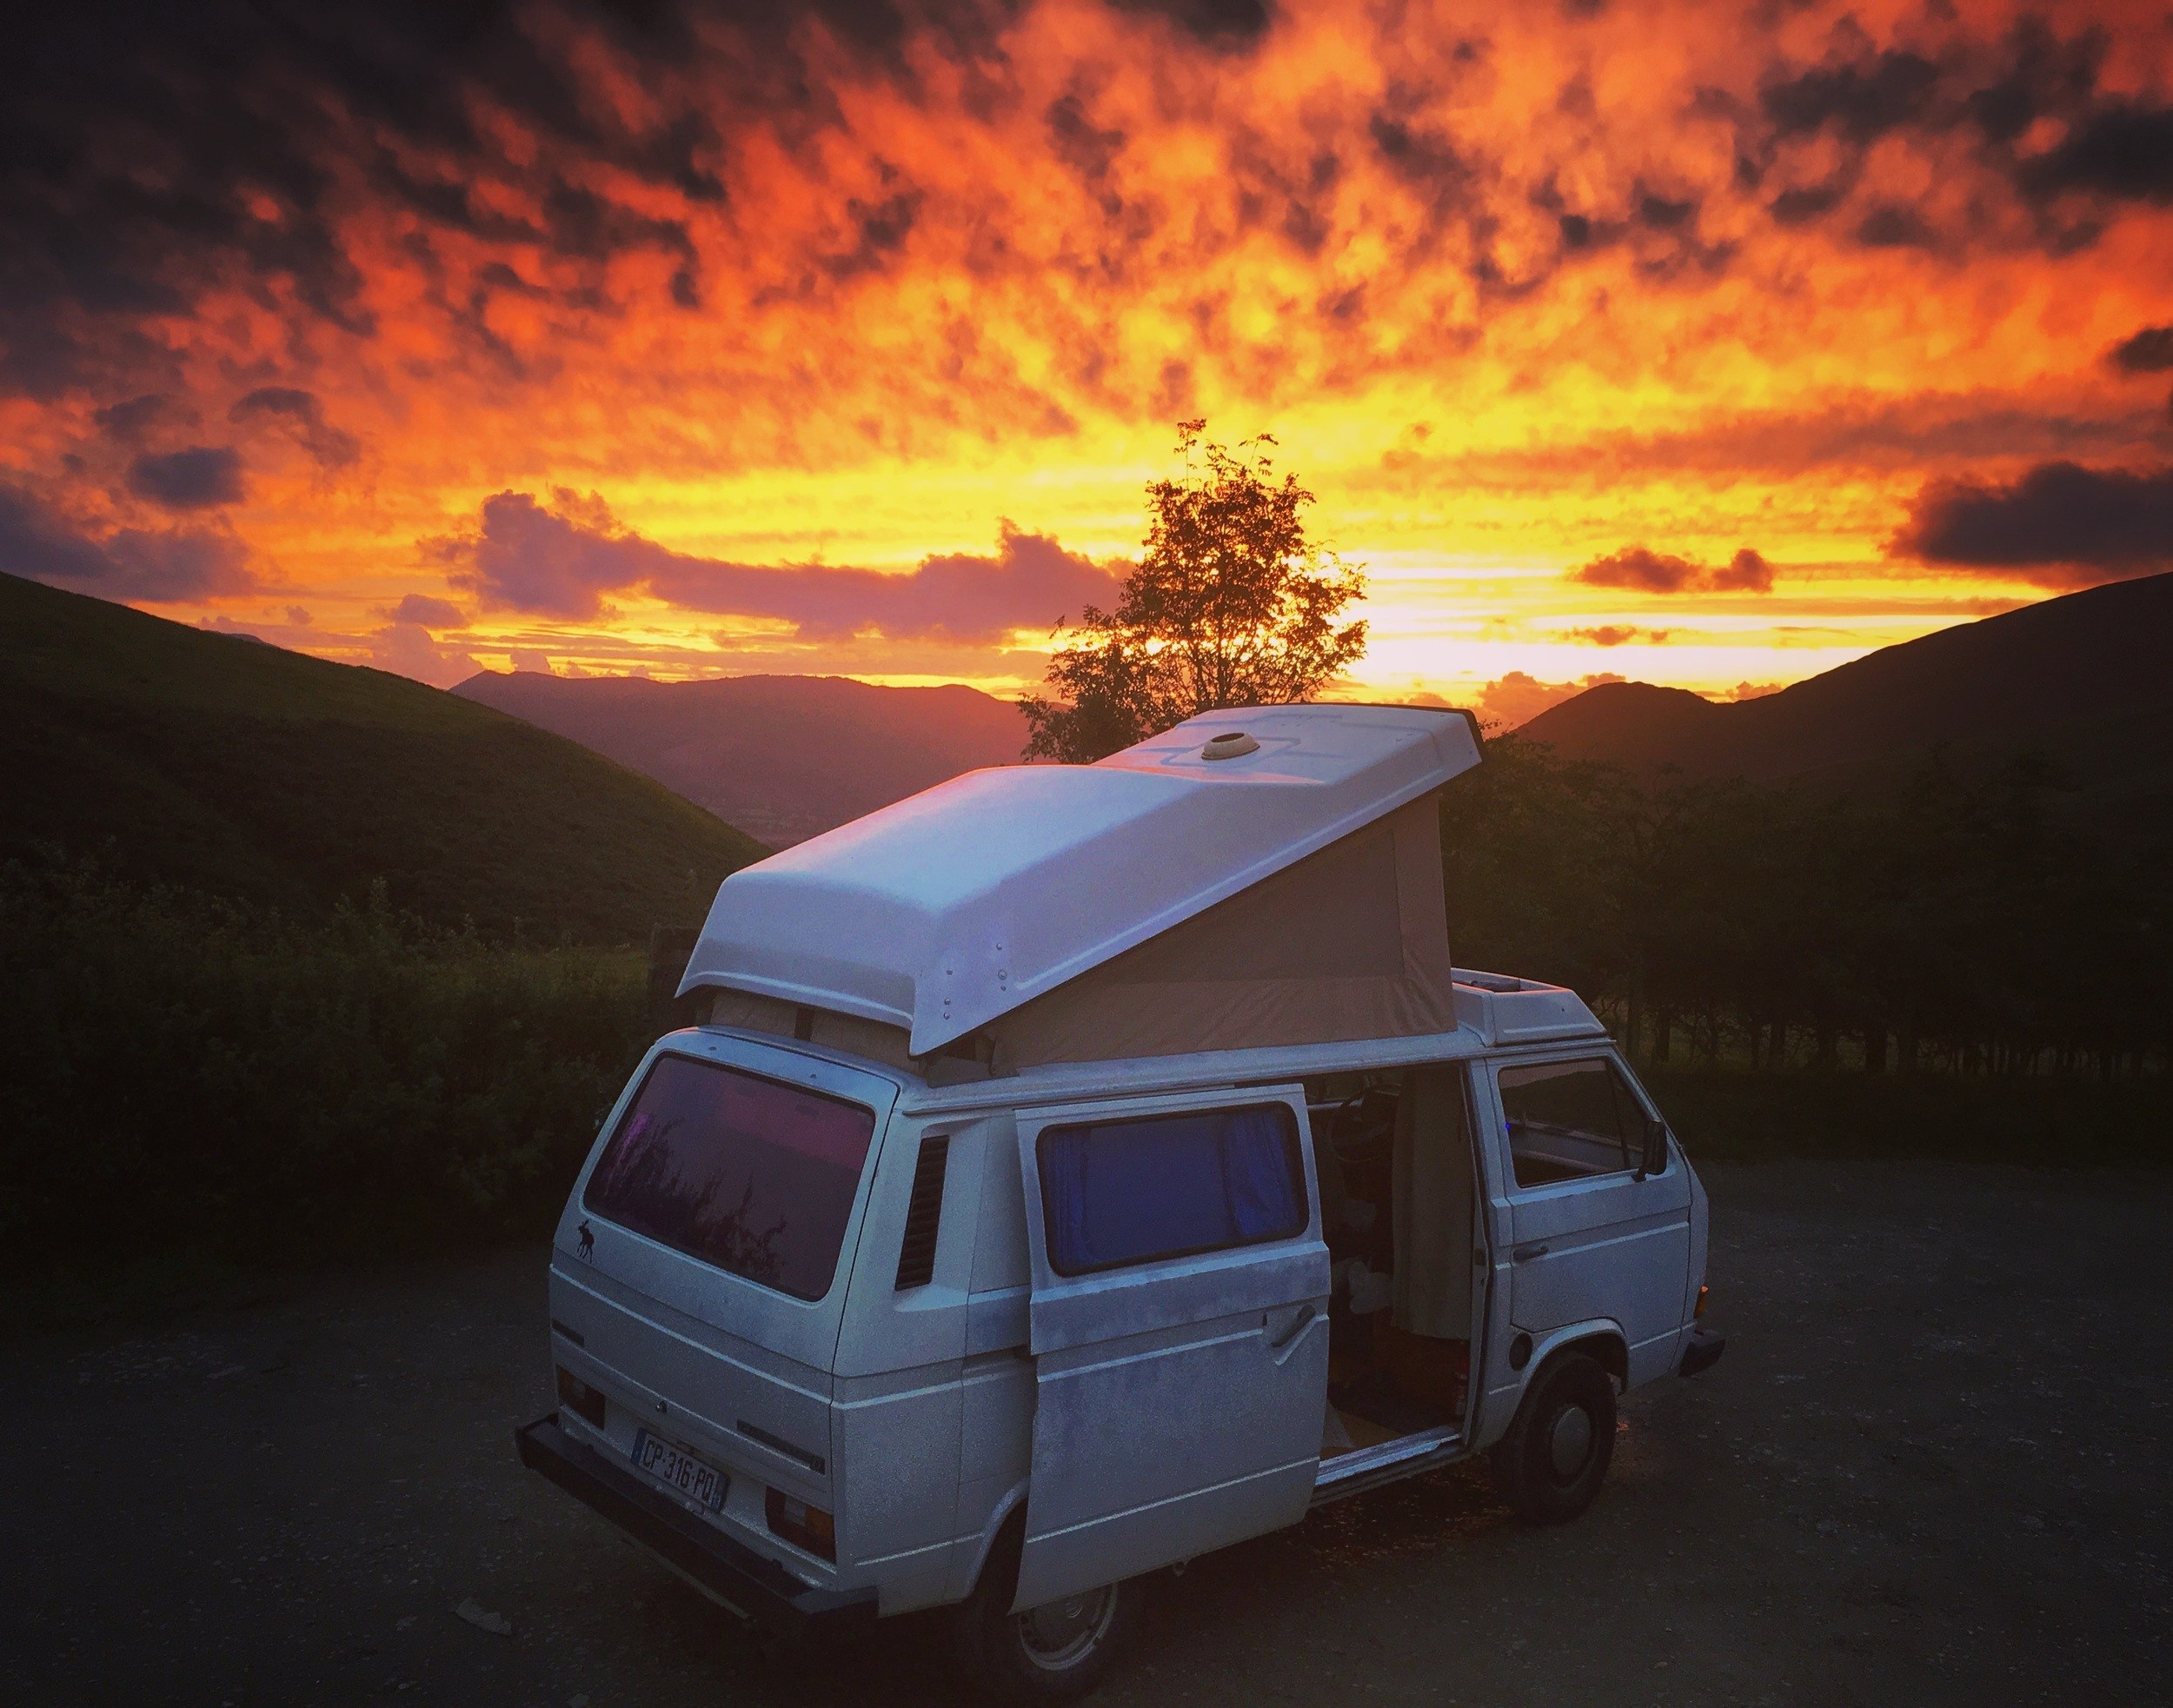 A sweet van setup under a sunset